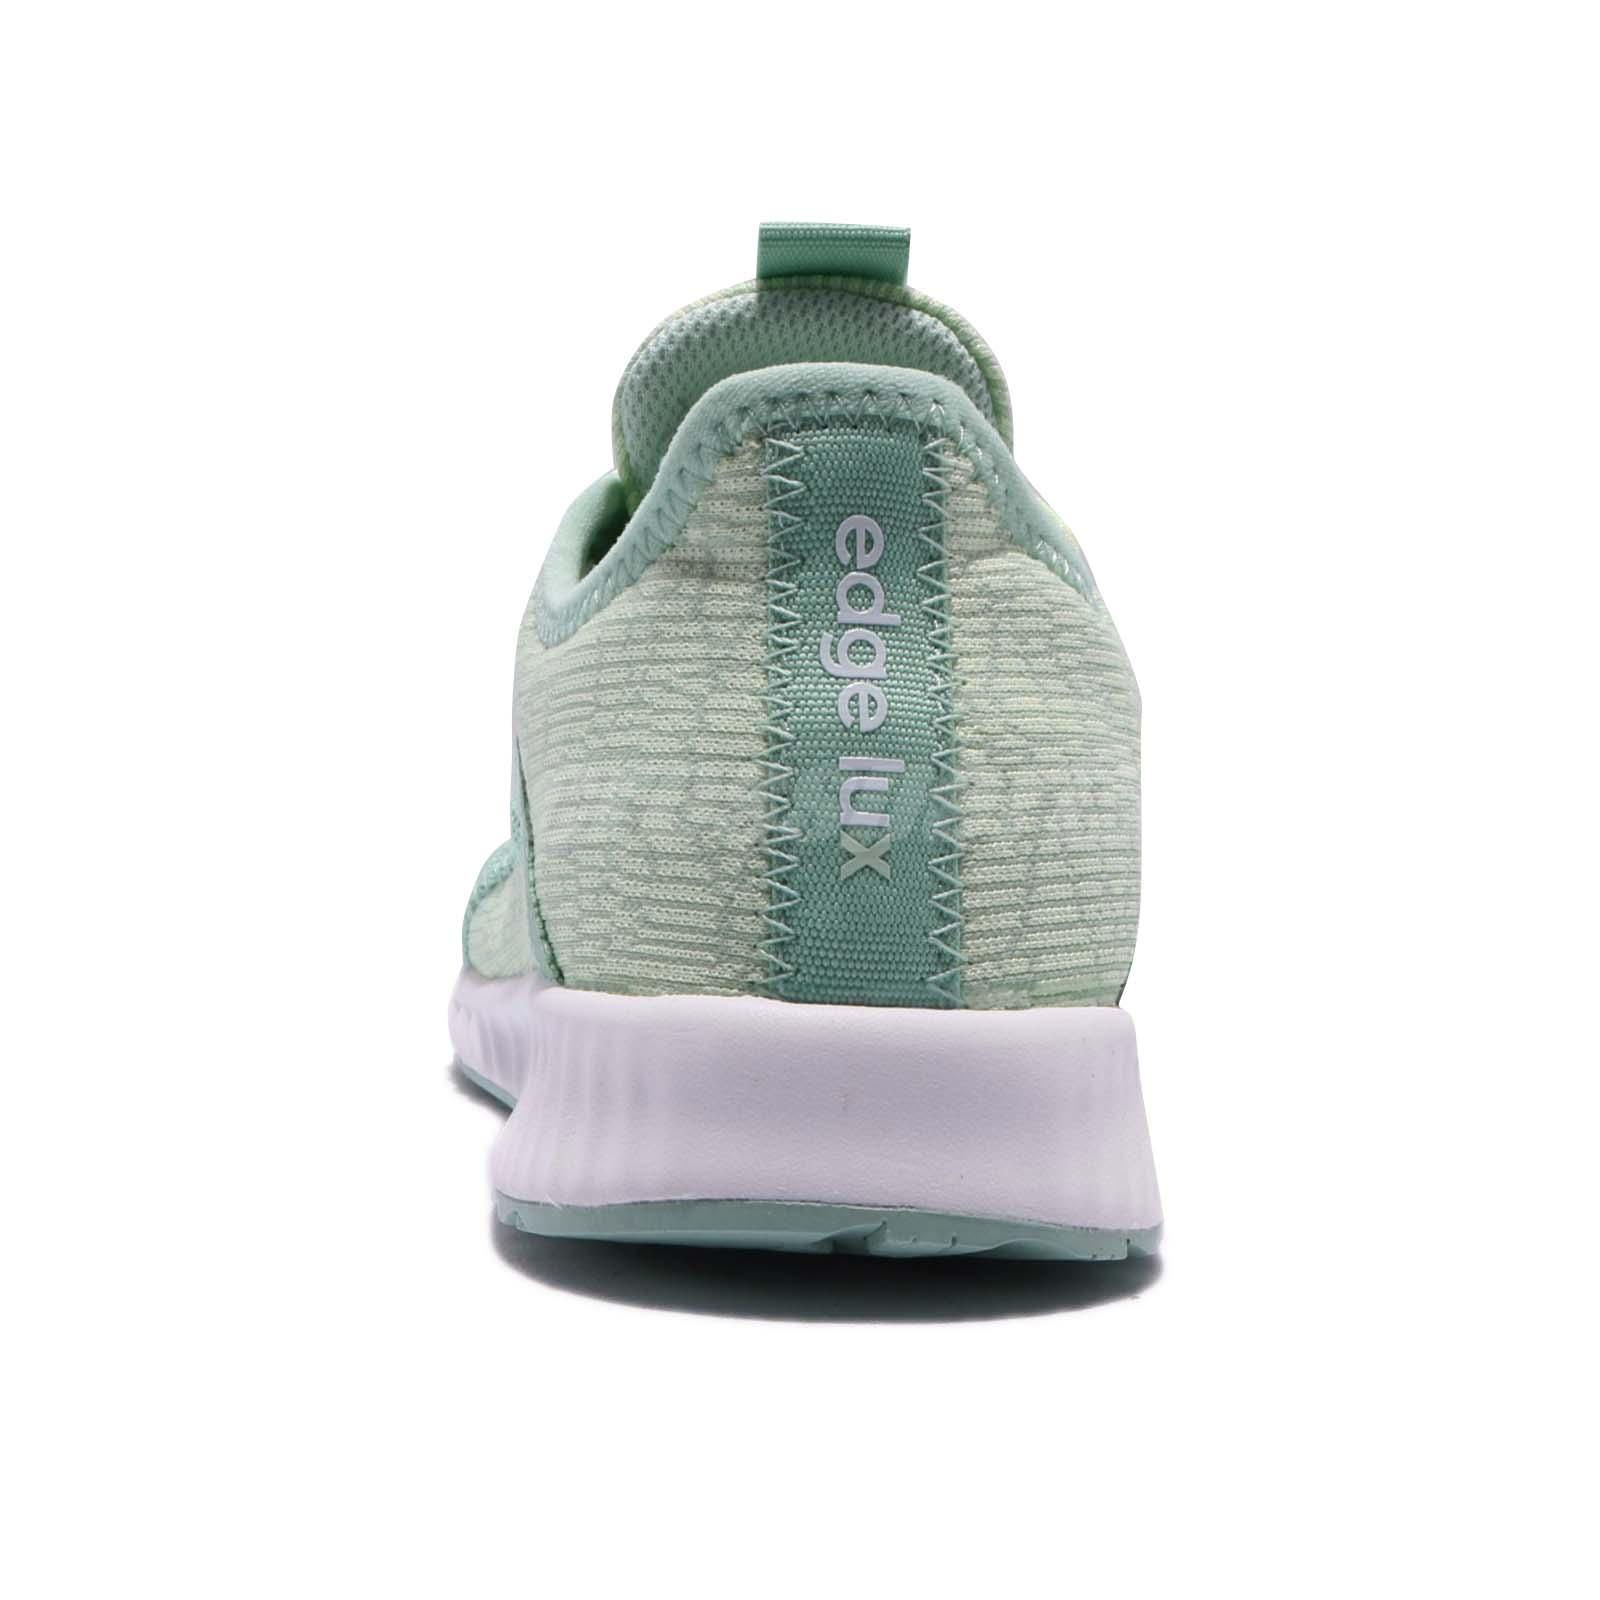 8a17c2550d2 adidas Edge Lux 2 W II Green White Women Running Athletic Shoes ...